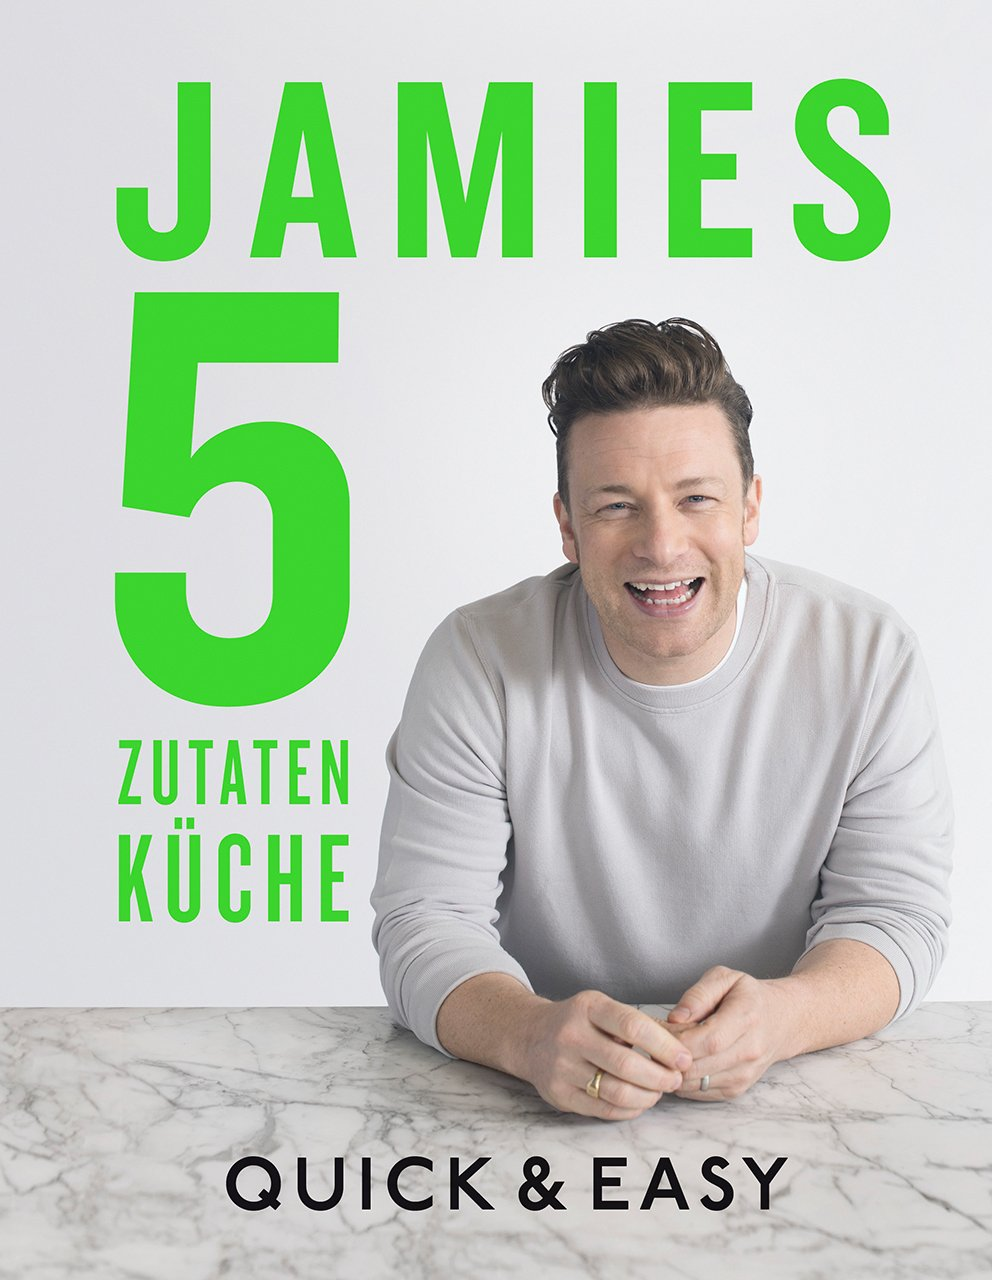 Jamies 5-Zutaten-Küche: Quick & Easy: Amazon.de: Jamie ...